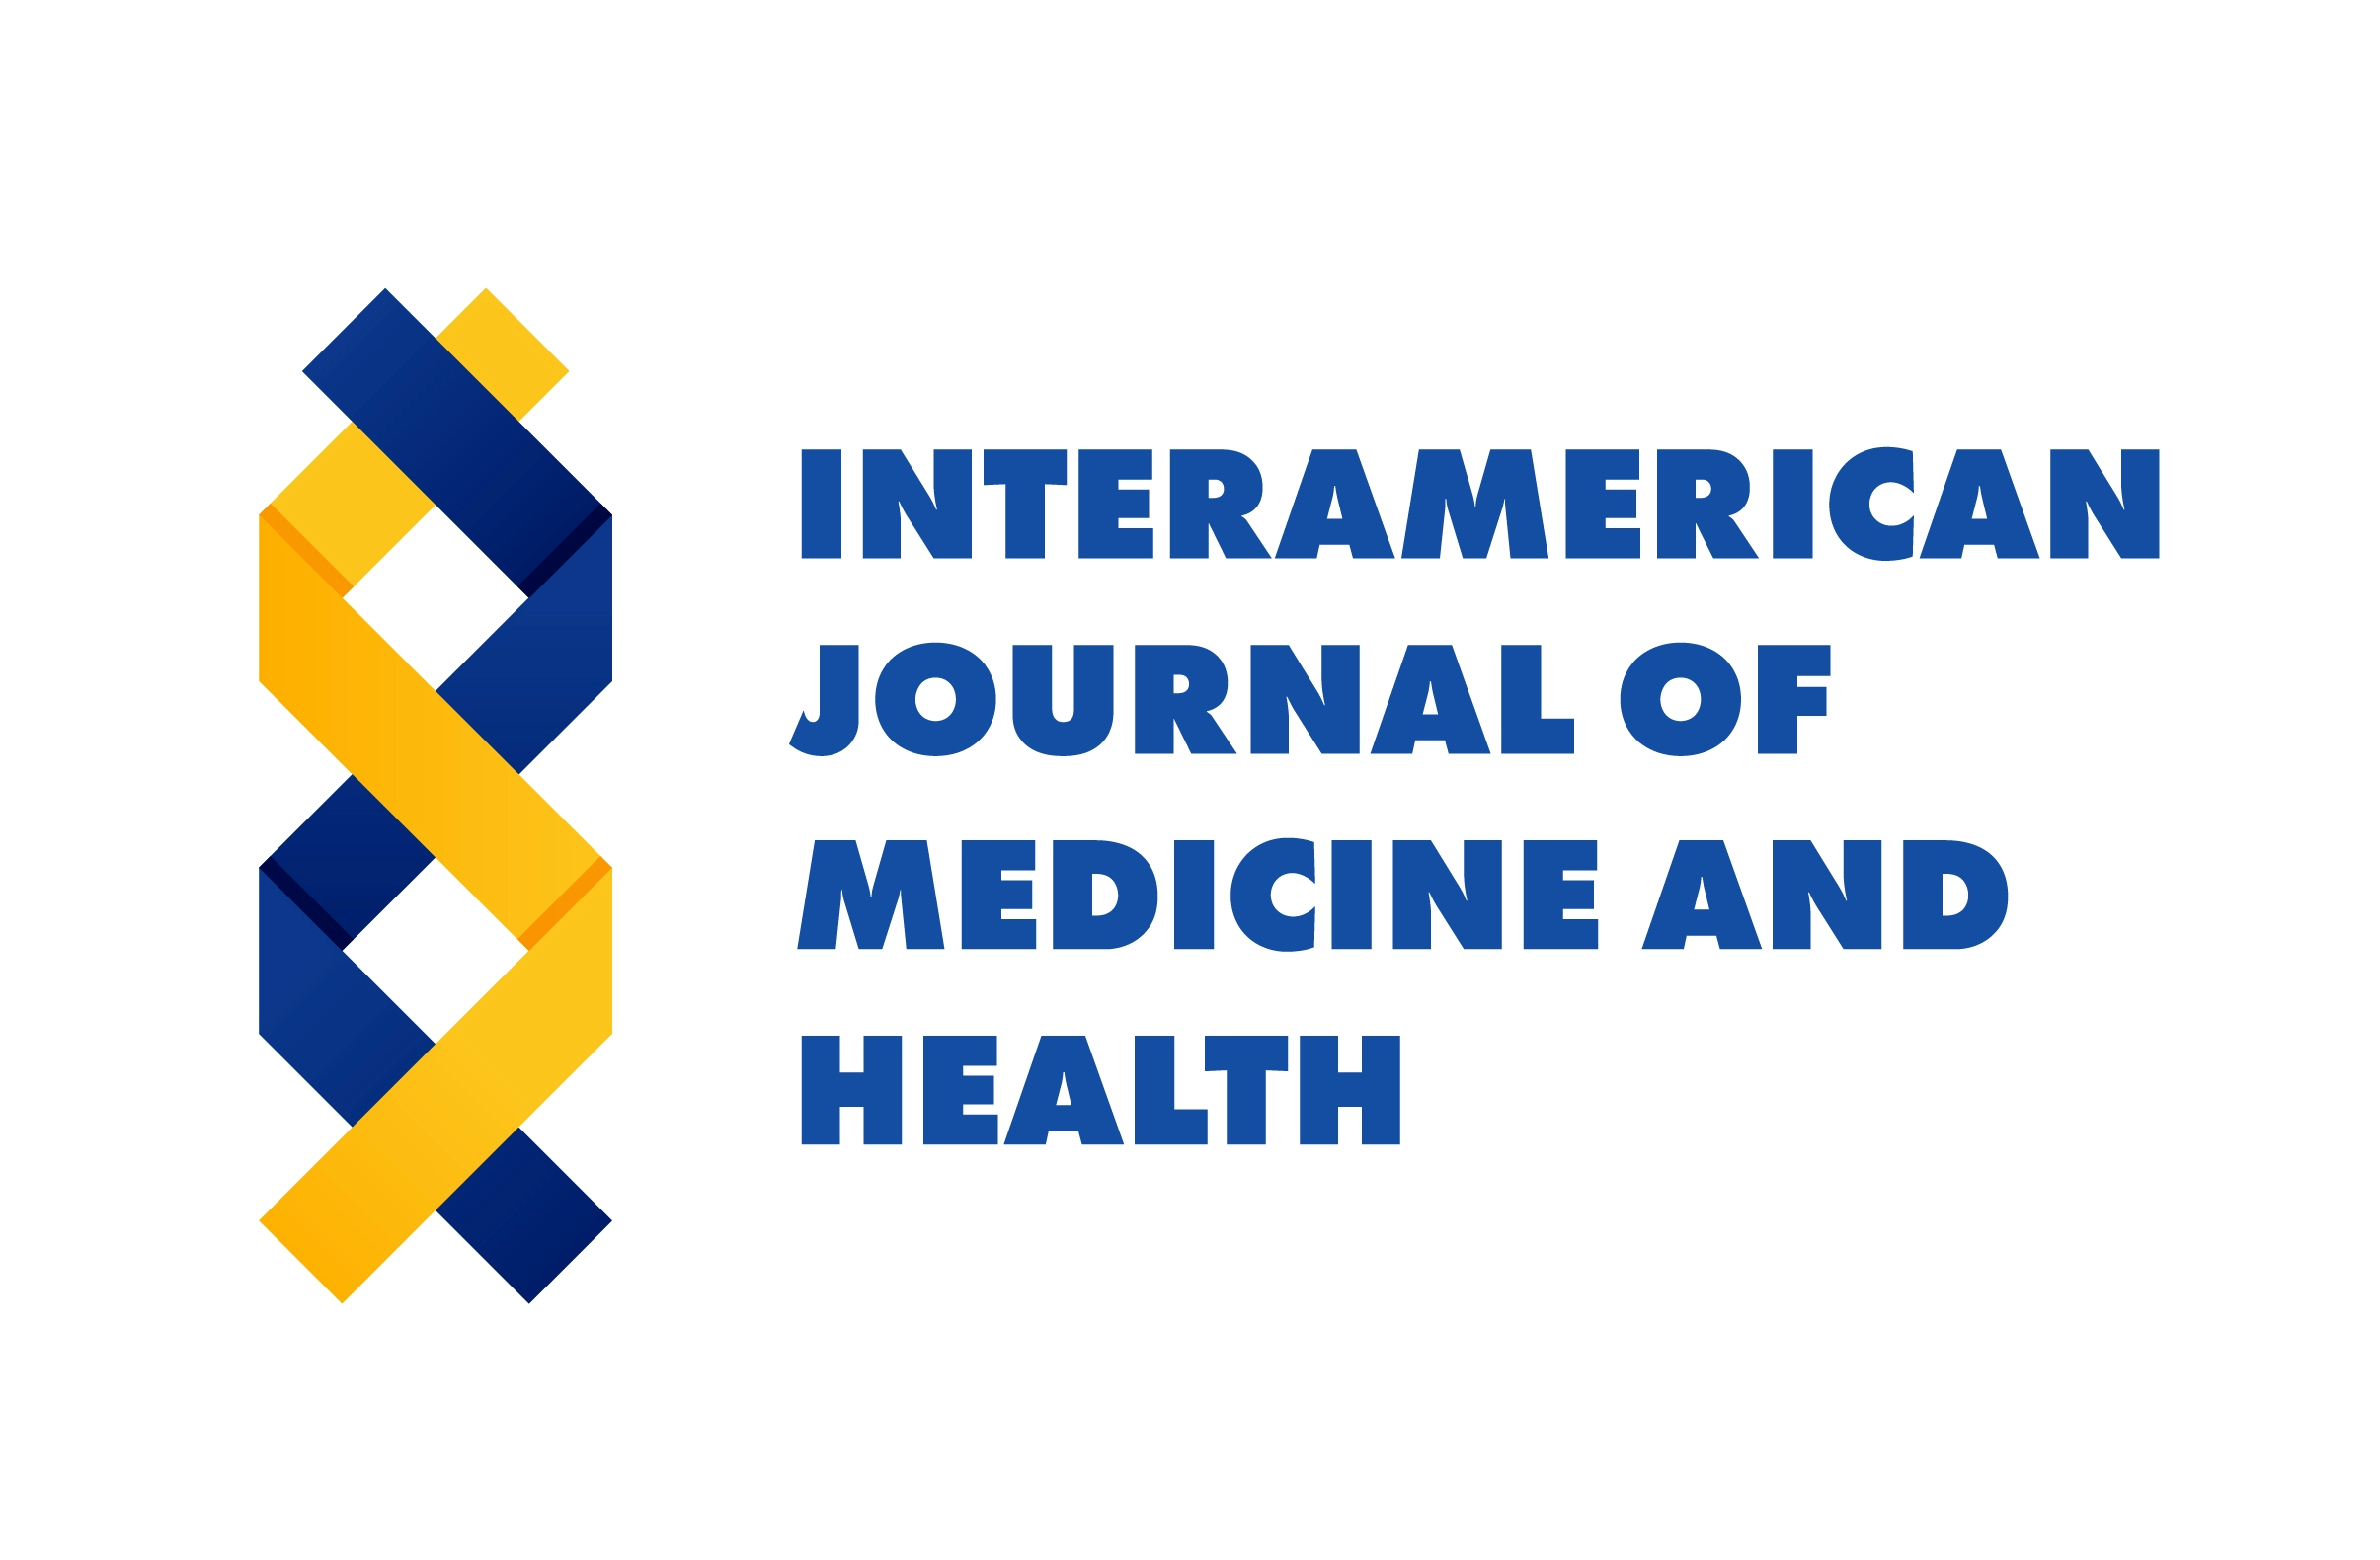 InterAmerican Journal of Medicine and Health